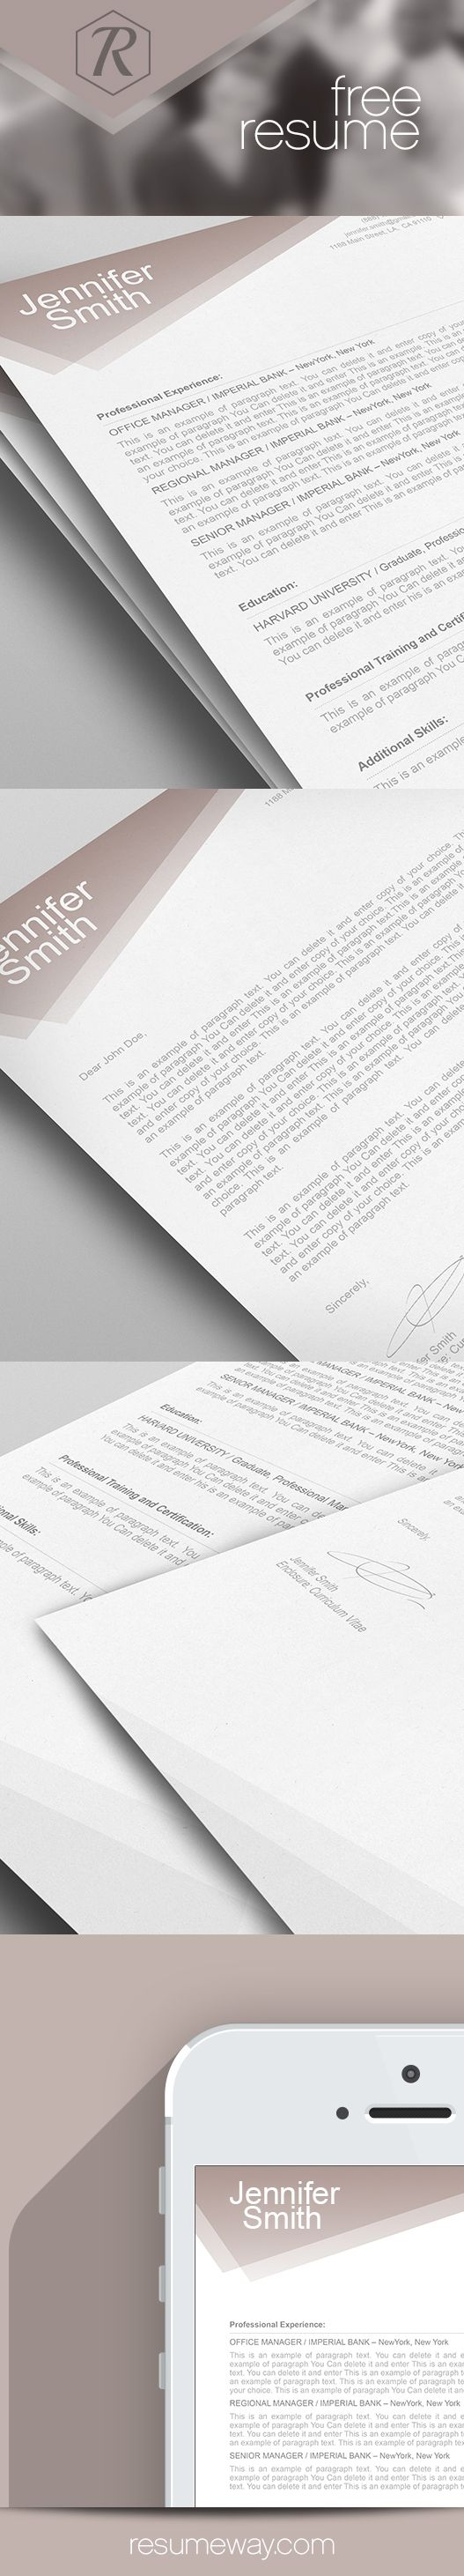 16 Best Free Resumes - Ms Word Images On Pinterest | Cover Letter